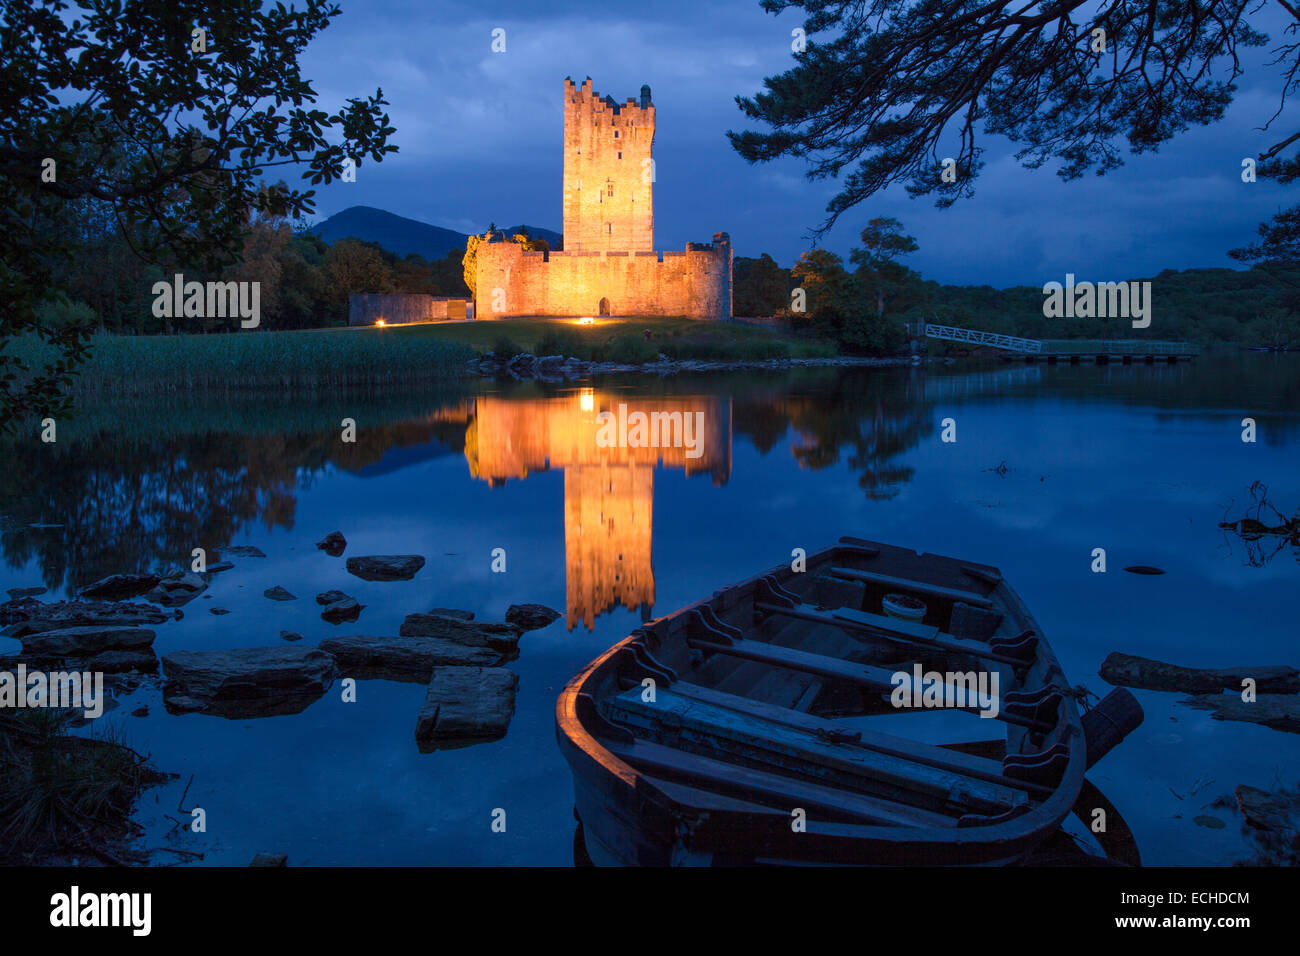 Fishing boat and Ross Castle illuminated at dusk, Lough Leane, Killarney National Park, County Kerry, Ireland. - Stock Image